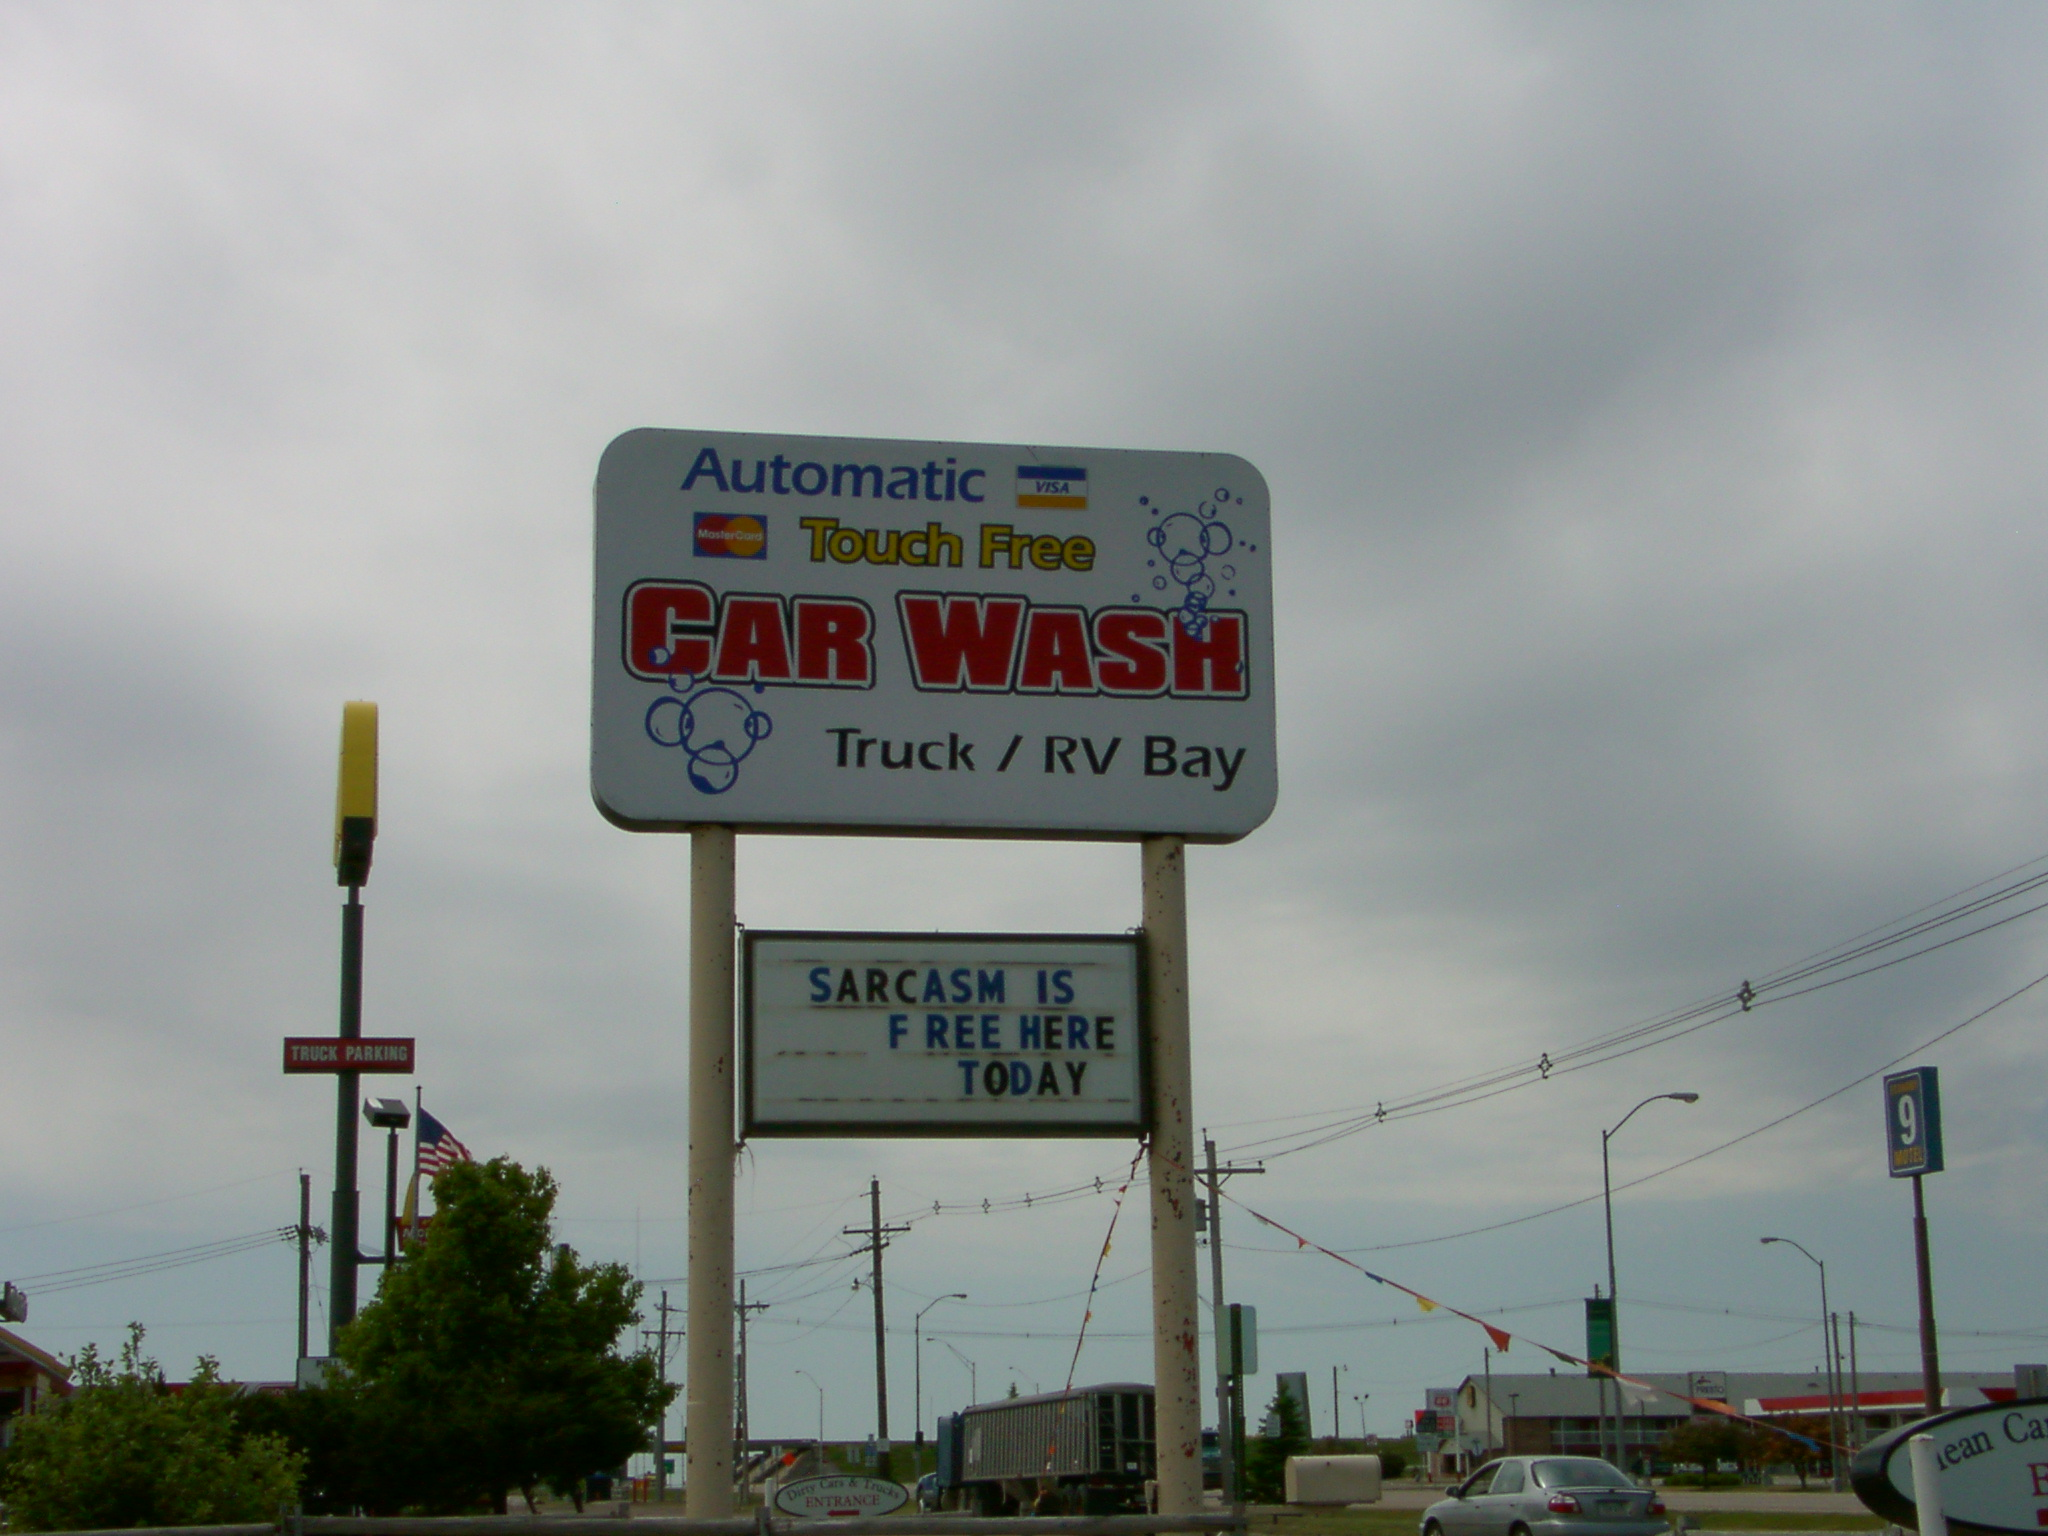 Kansas Car Wash Sign-Sarcasm Is Free Here Today-07.JPG